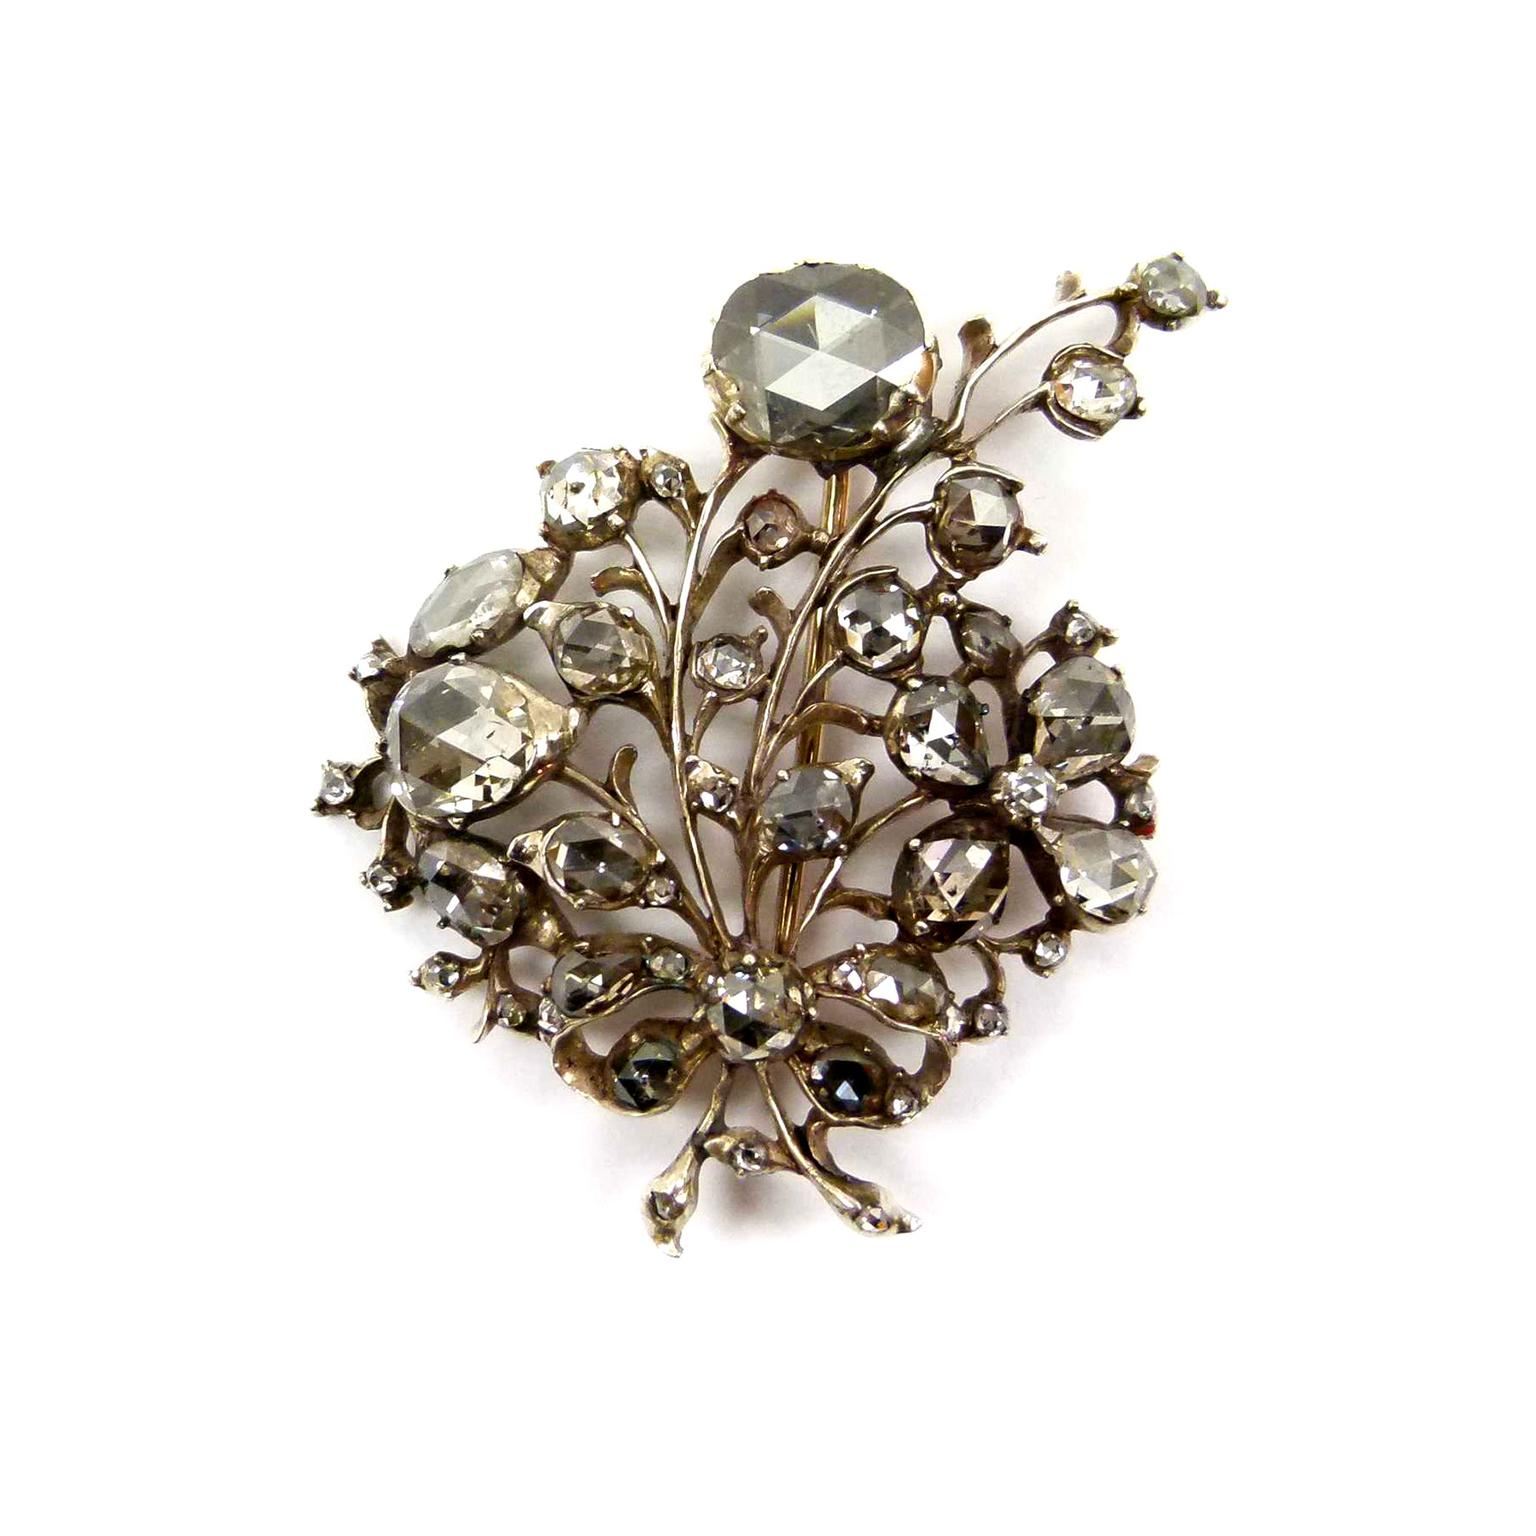 S.J. Phillips 18th century rose-cut diamond spray brooch